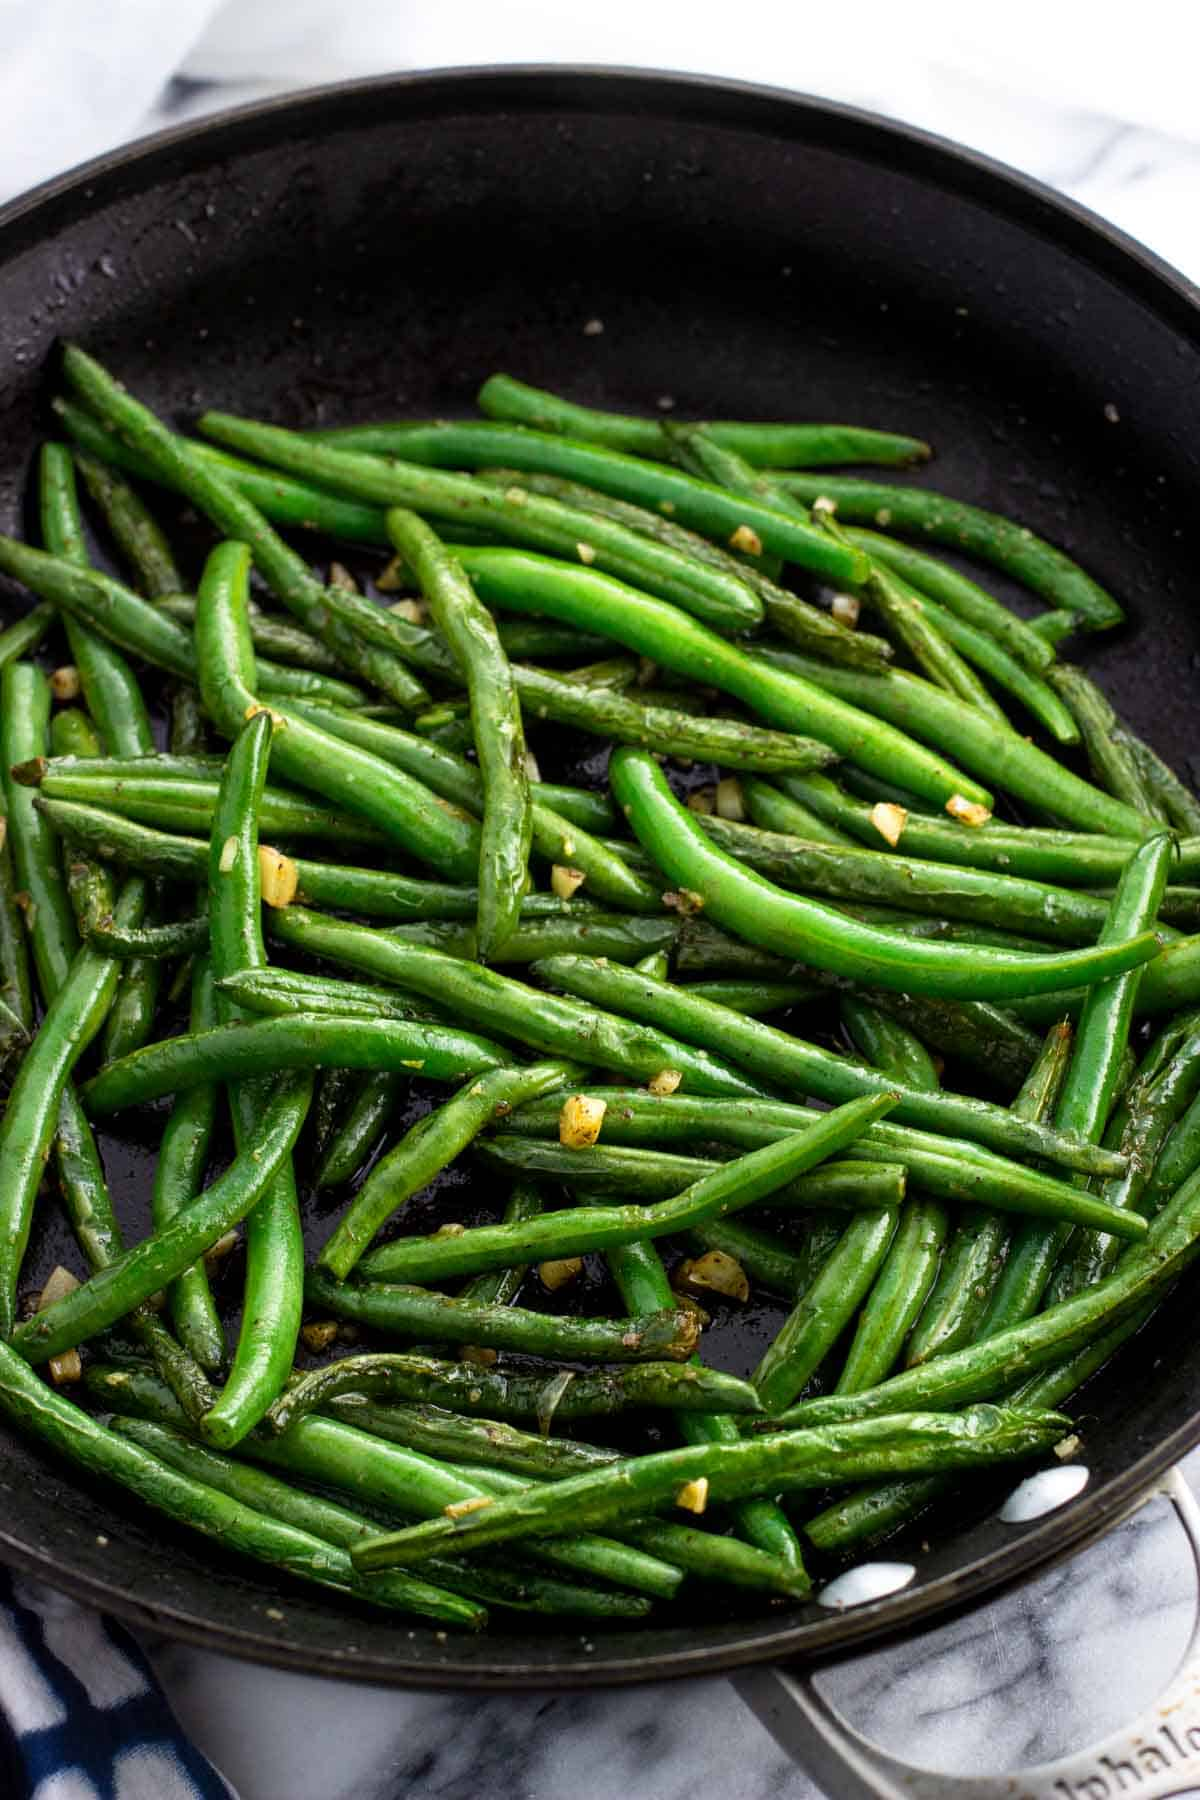 Fully sauteed green beans and garlic in a pan.